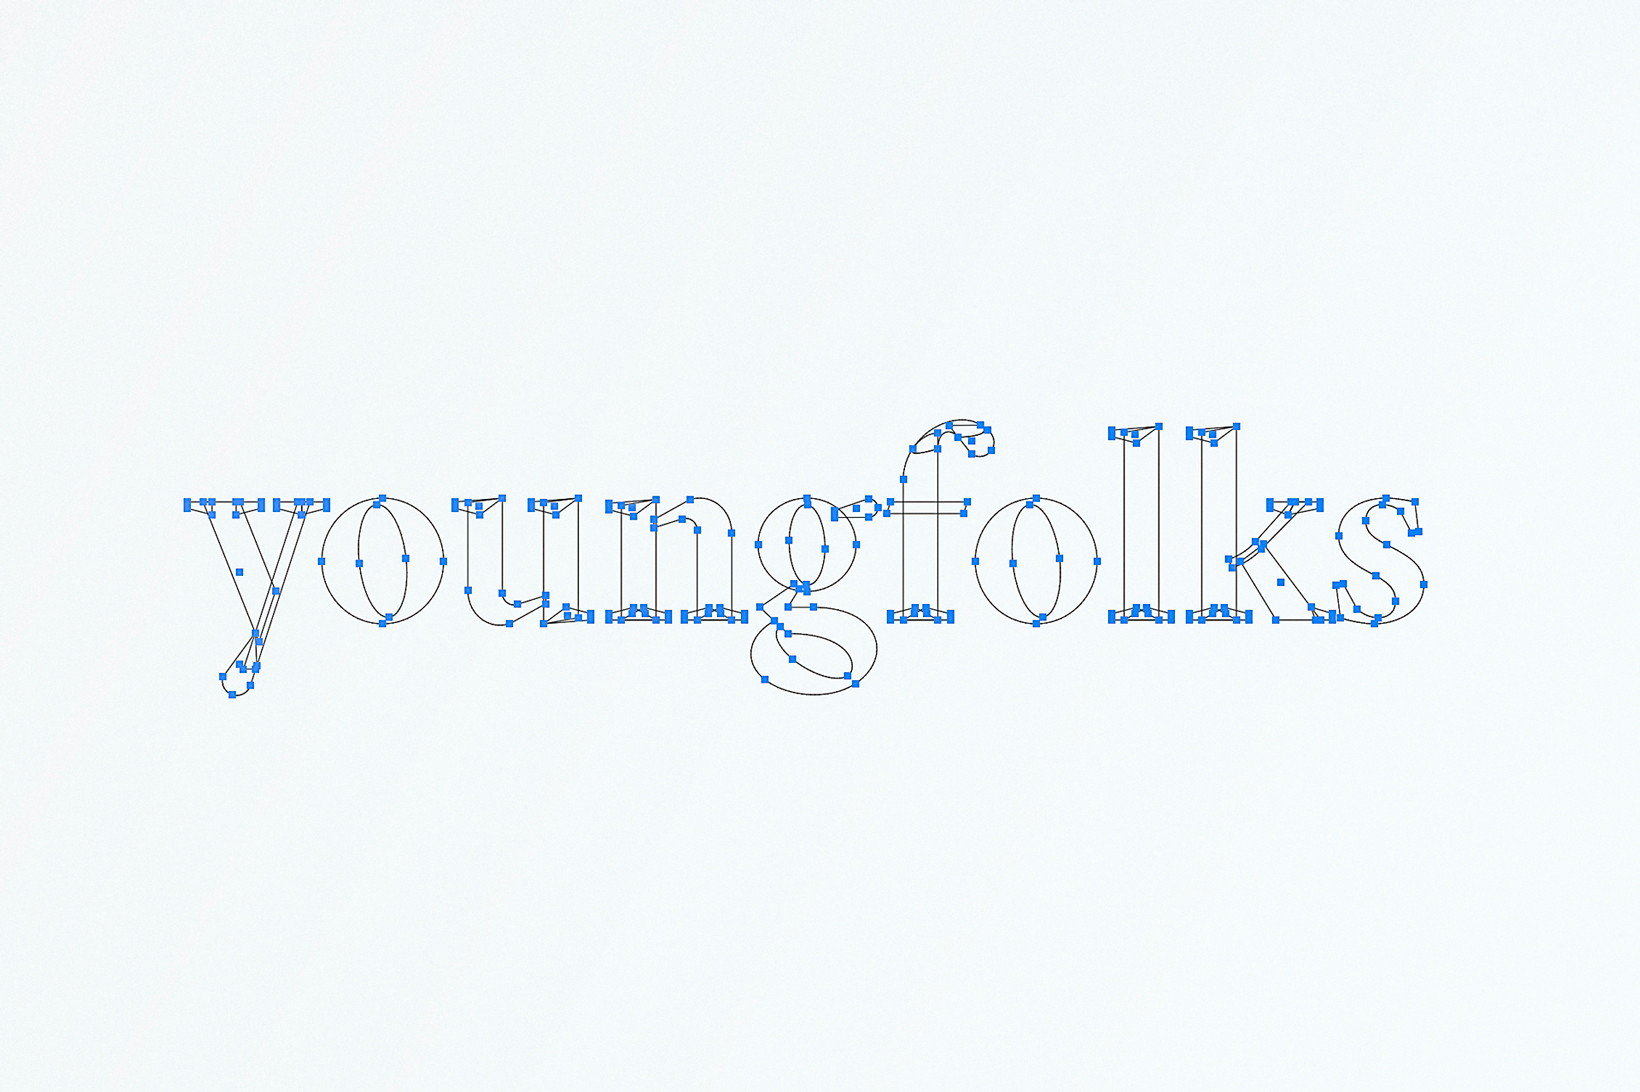 Young Folks digital marketing branding identidad corporativa diseño gráfico logo isotipo Vibranding